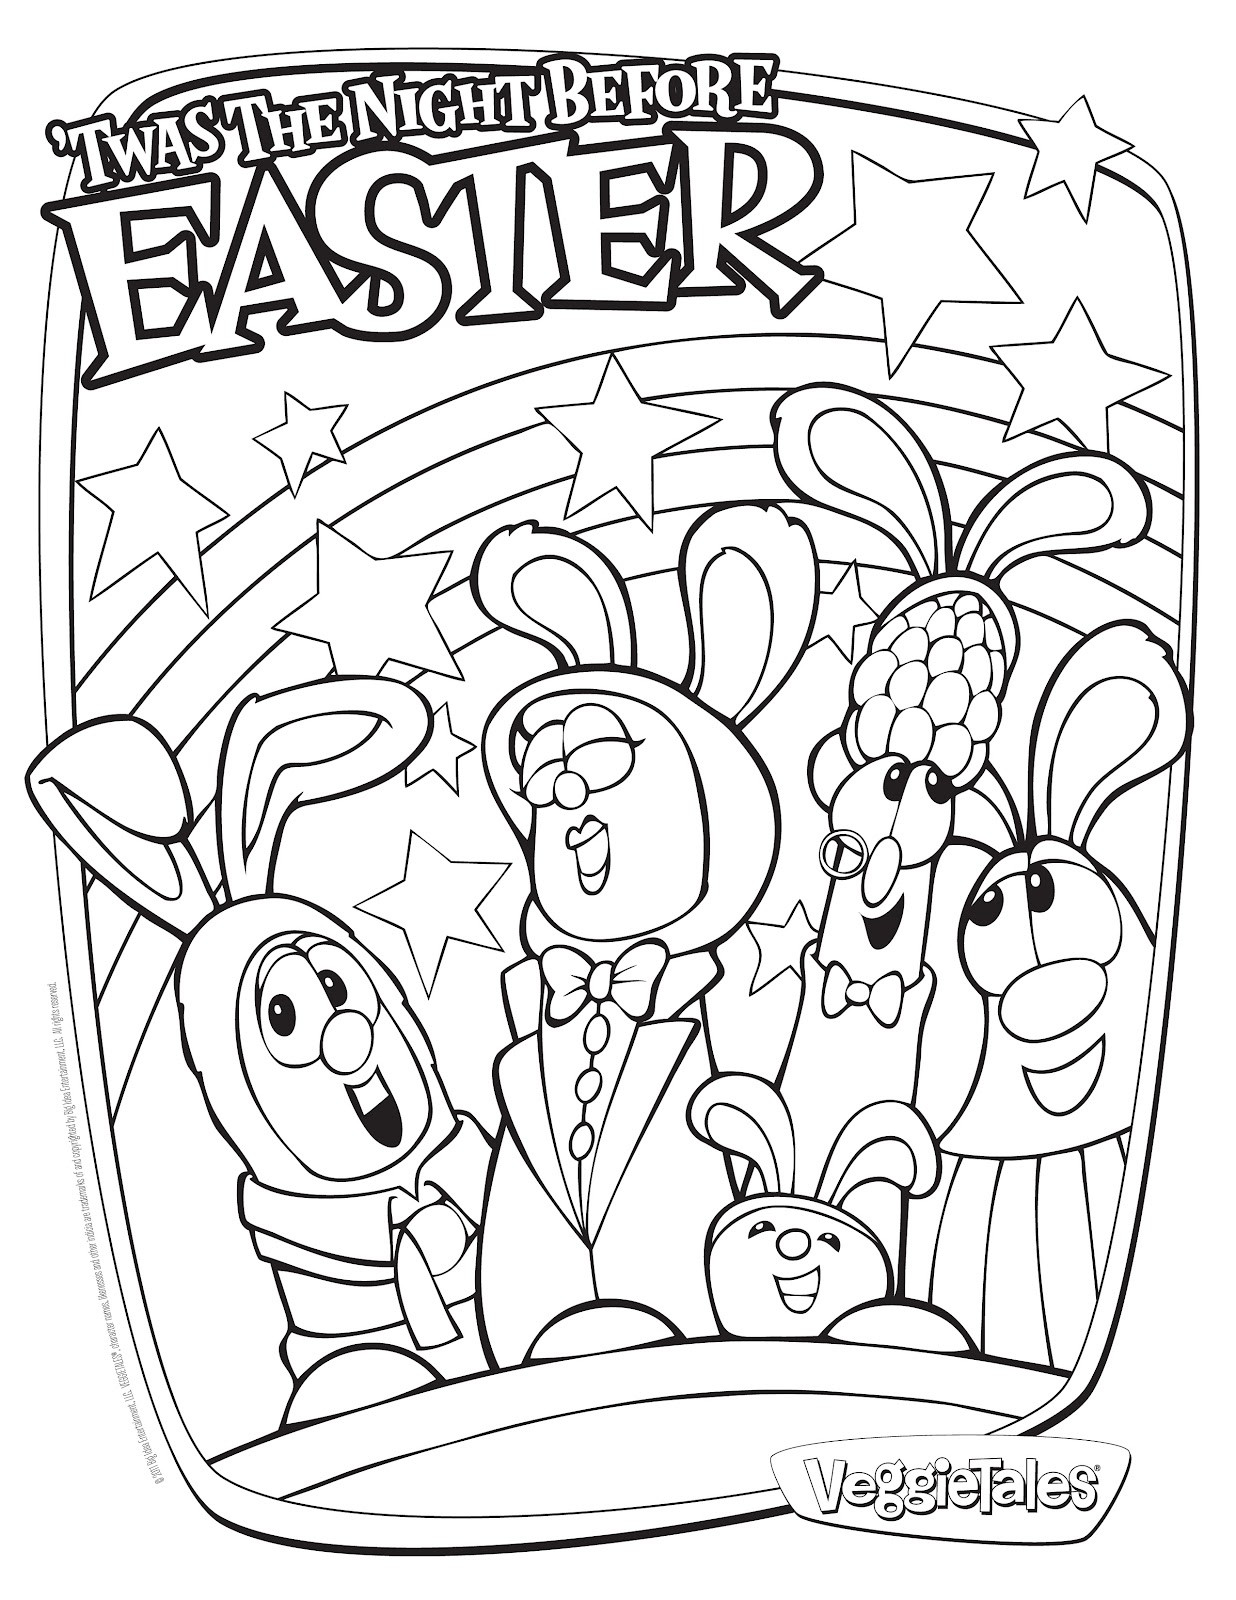 1236x1600 Ariana Grande Coloring Pages Best Of Best Clinicals Images